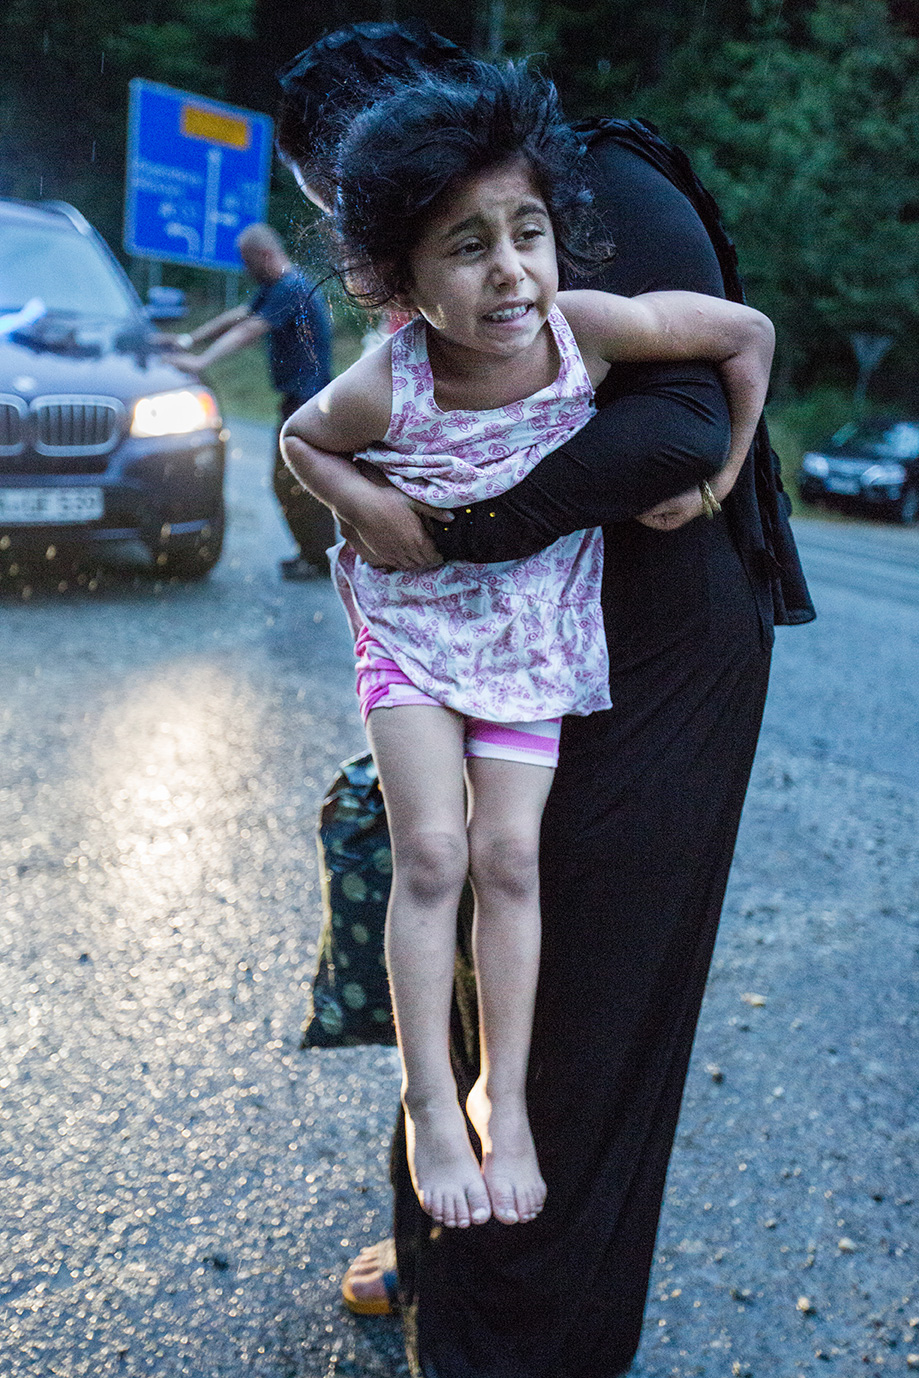 06_mother-daughter-get-of-Germany-after-flight-Syria